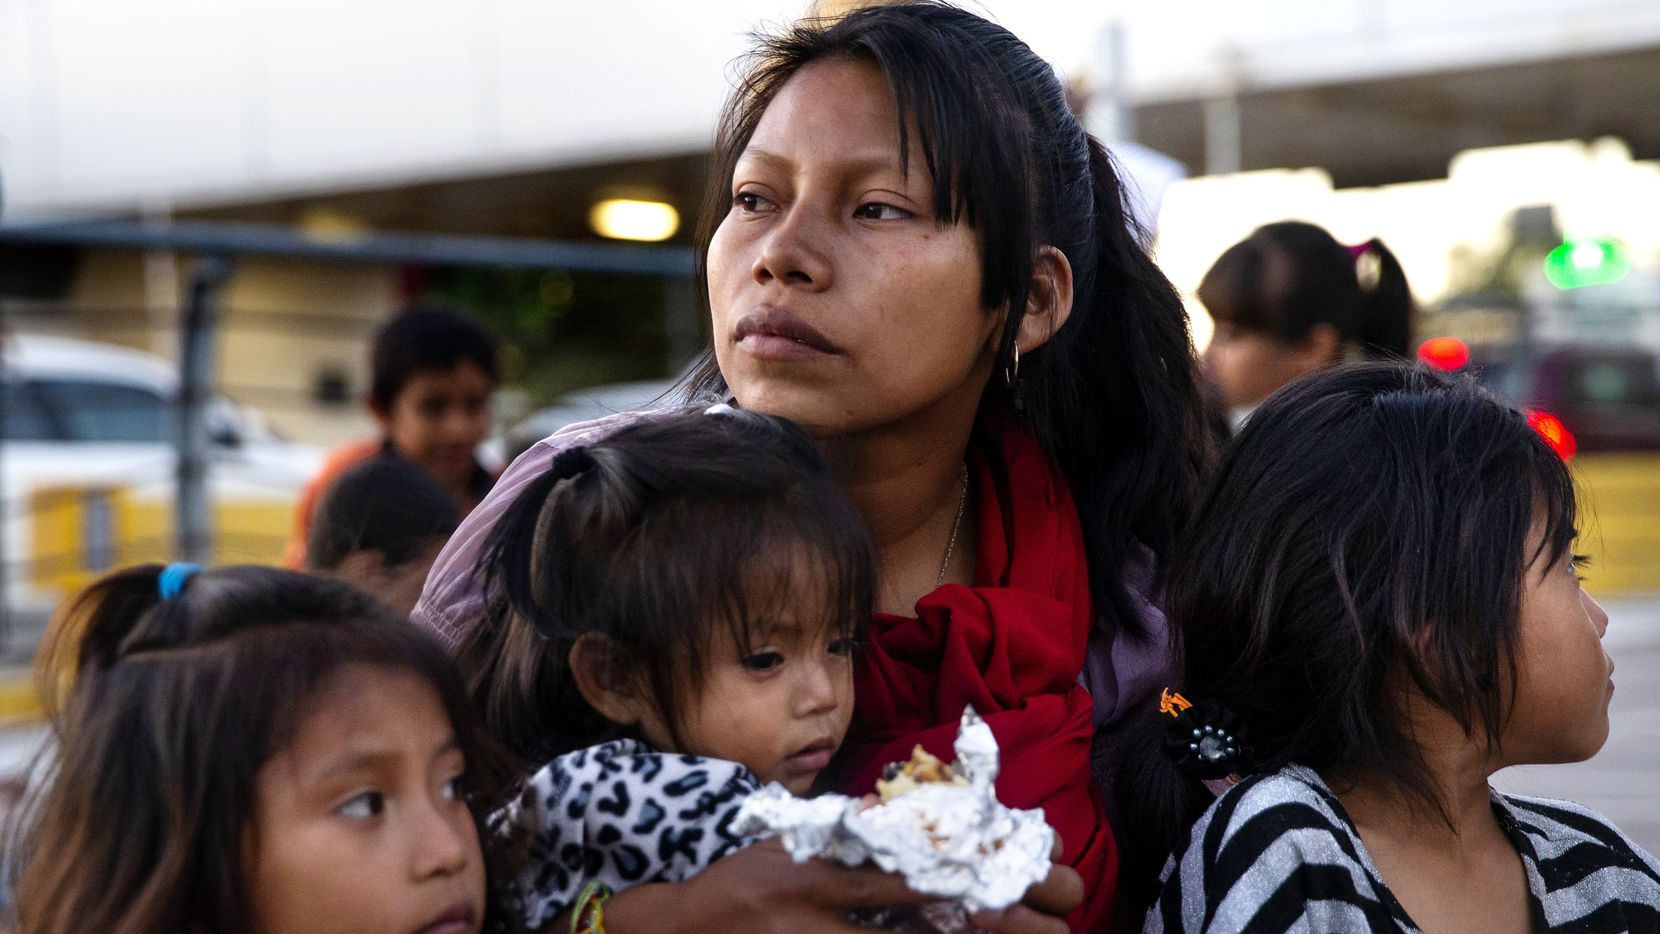 Patricia Giron (center) holds her daughters, Yesenia (left), 6, Wendy (center), 1, and Yocelyn, 6, at the temporary tent camp of asylum-seekers in Matamoros, Mexico, on Saturday, Dec. 14, 2019. The Giron family, from Chiapas, Mexico, is living in temporary tent shelters under the Migrant Protection Policy, which requires asylum-seekers to wait in Mexico while their asylum claims are processed. (Lynda M. Gonzalez/The Dallas Morning News) ORG XMIT: 20048406A